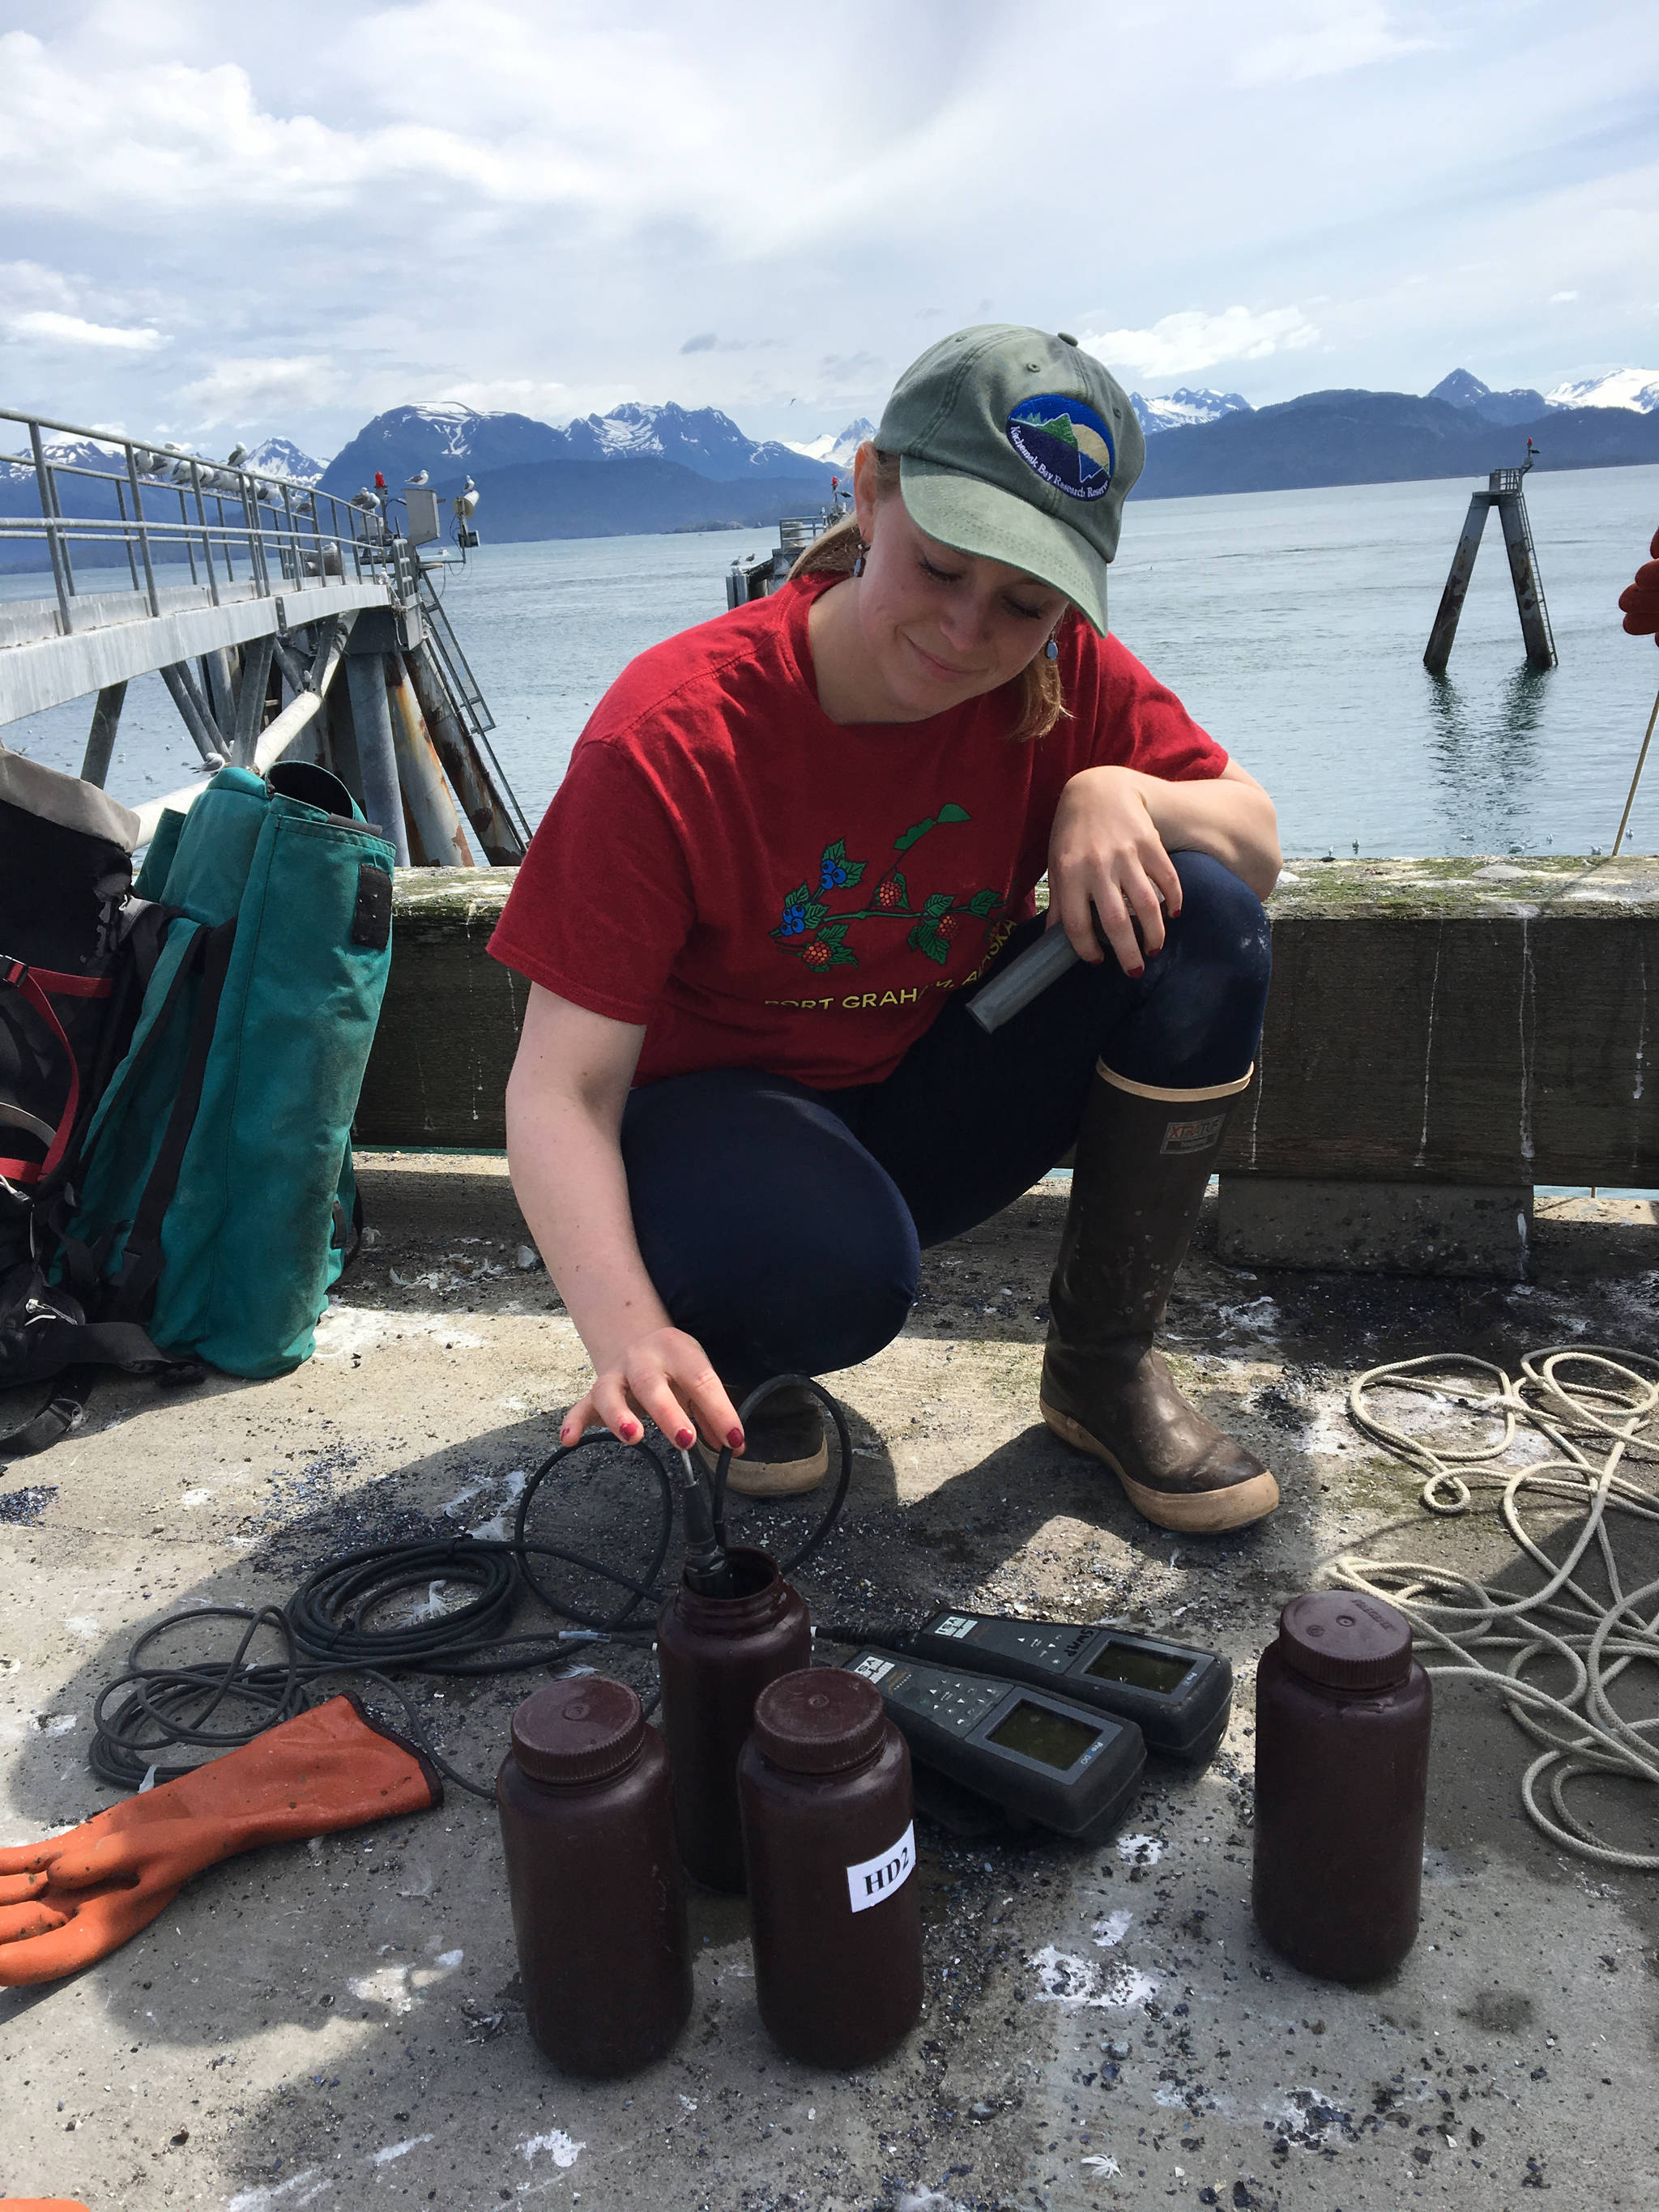 Harmful species coordinator Rosie Masui takes samples at the Homer Harbor in July 2017 in Homer, Alaska. (Photo provided)